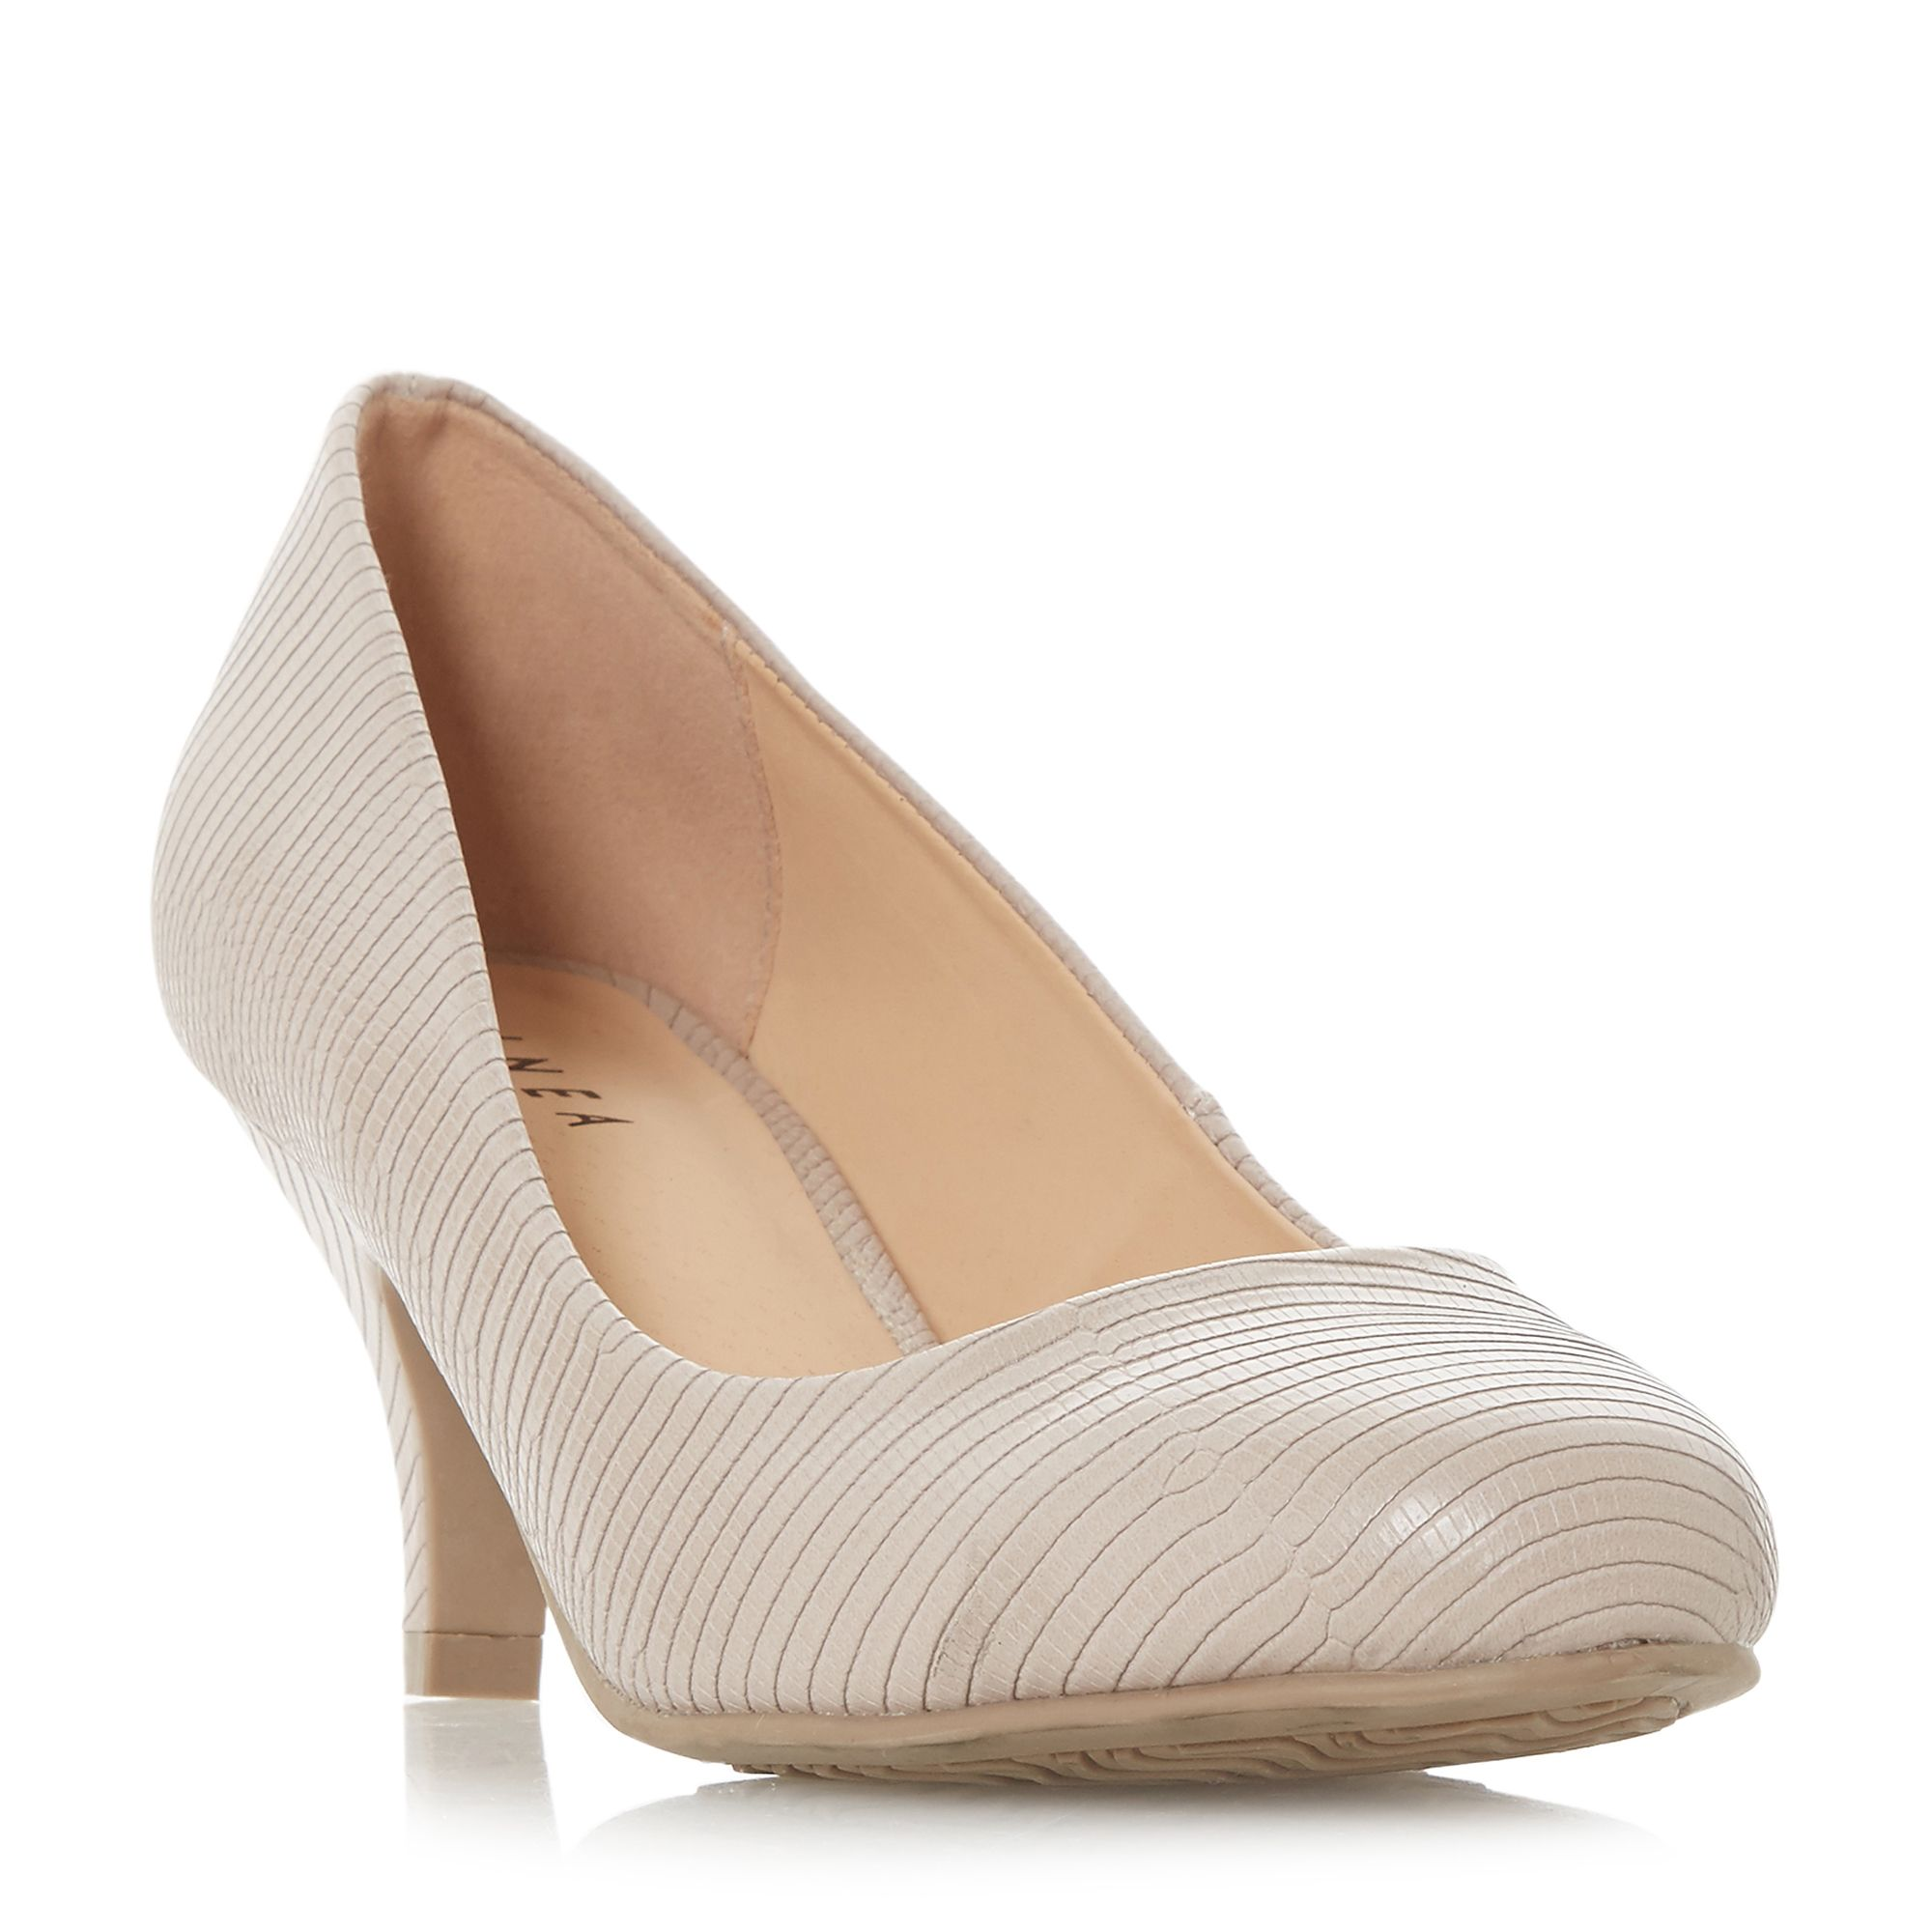 Linea Arabella Almond Toe Court Shoes, Nude